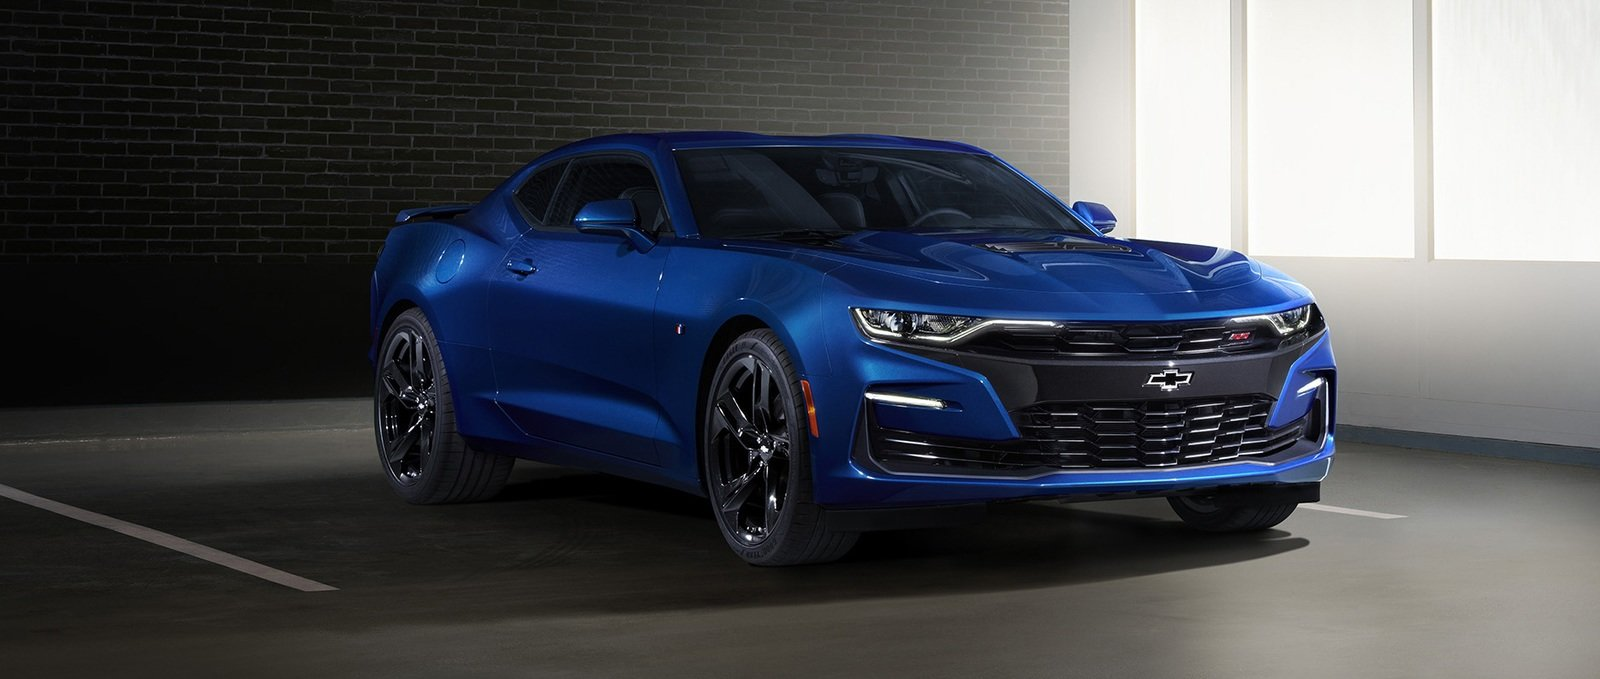 chevrolet camaro reviews specs prices photos and videos top speed. Black Bedroom Furniture Sets. Home Design Ideas